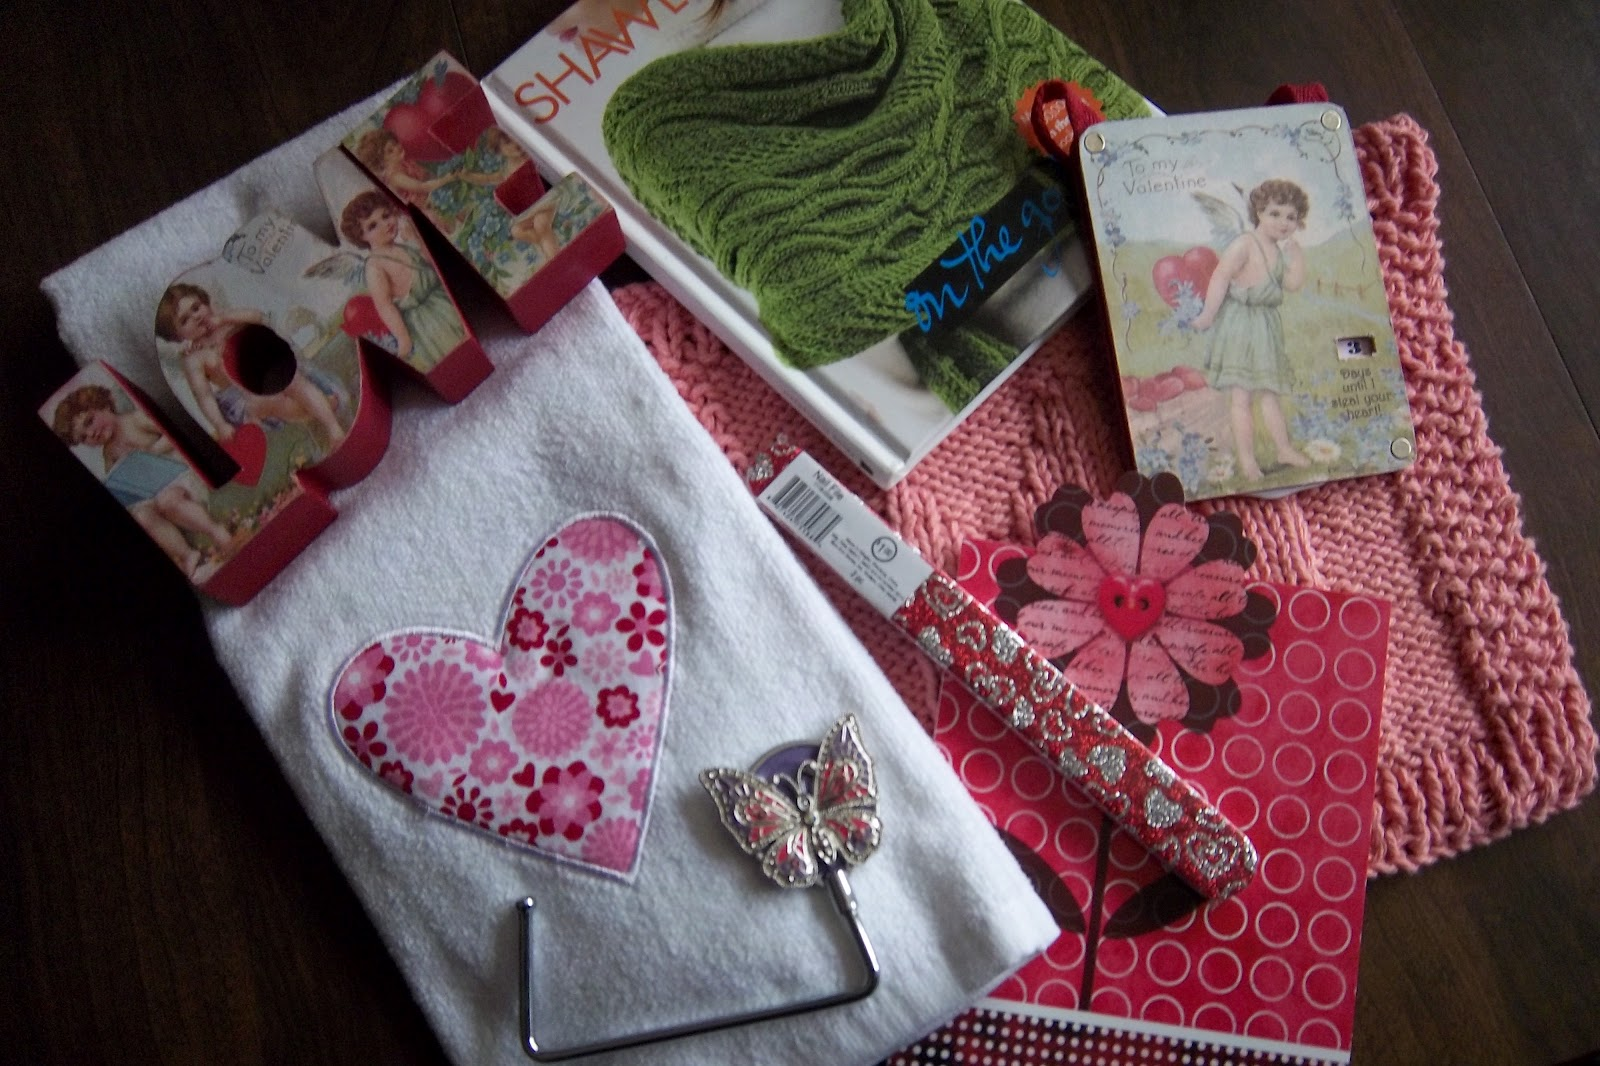 PLUMKRAZYVINTAGE: FAB GIFTS FROM SECRET SISTER